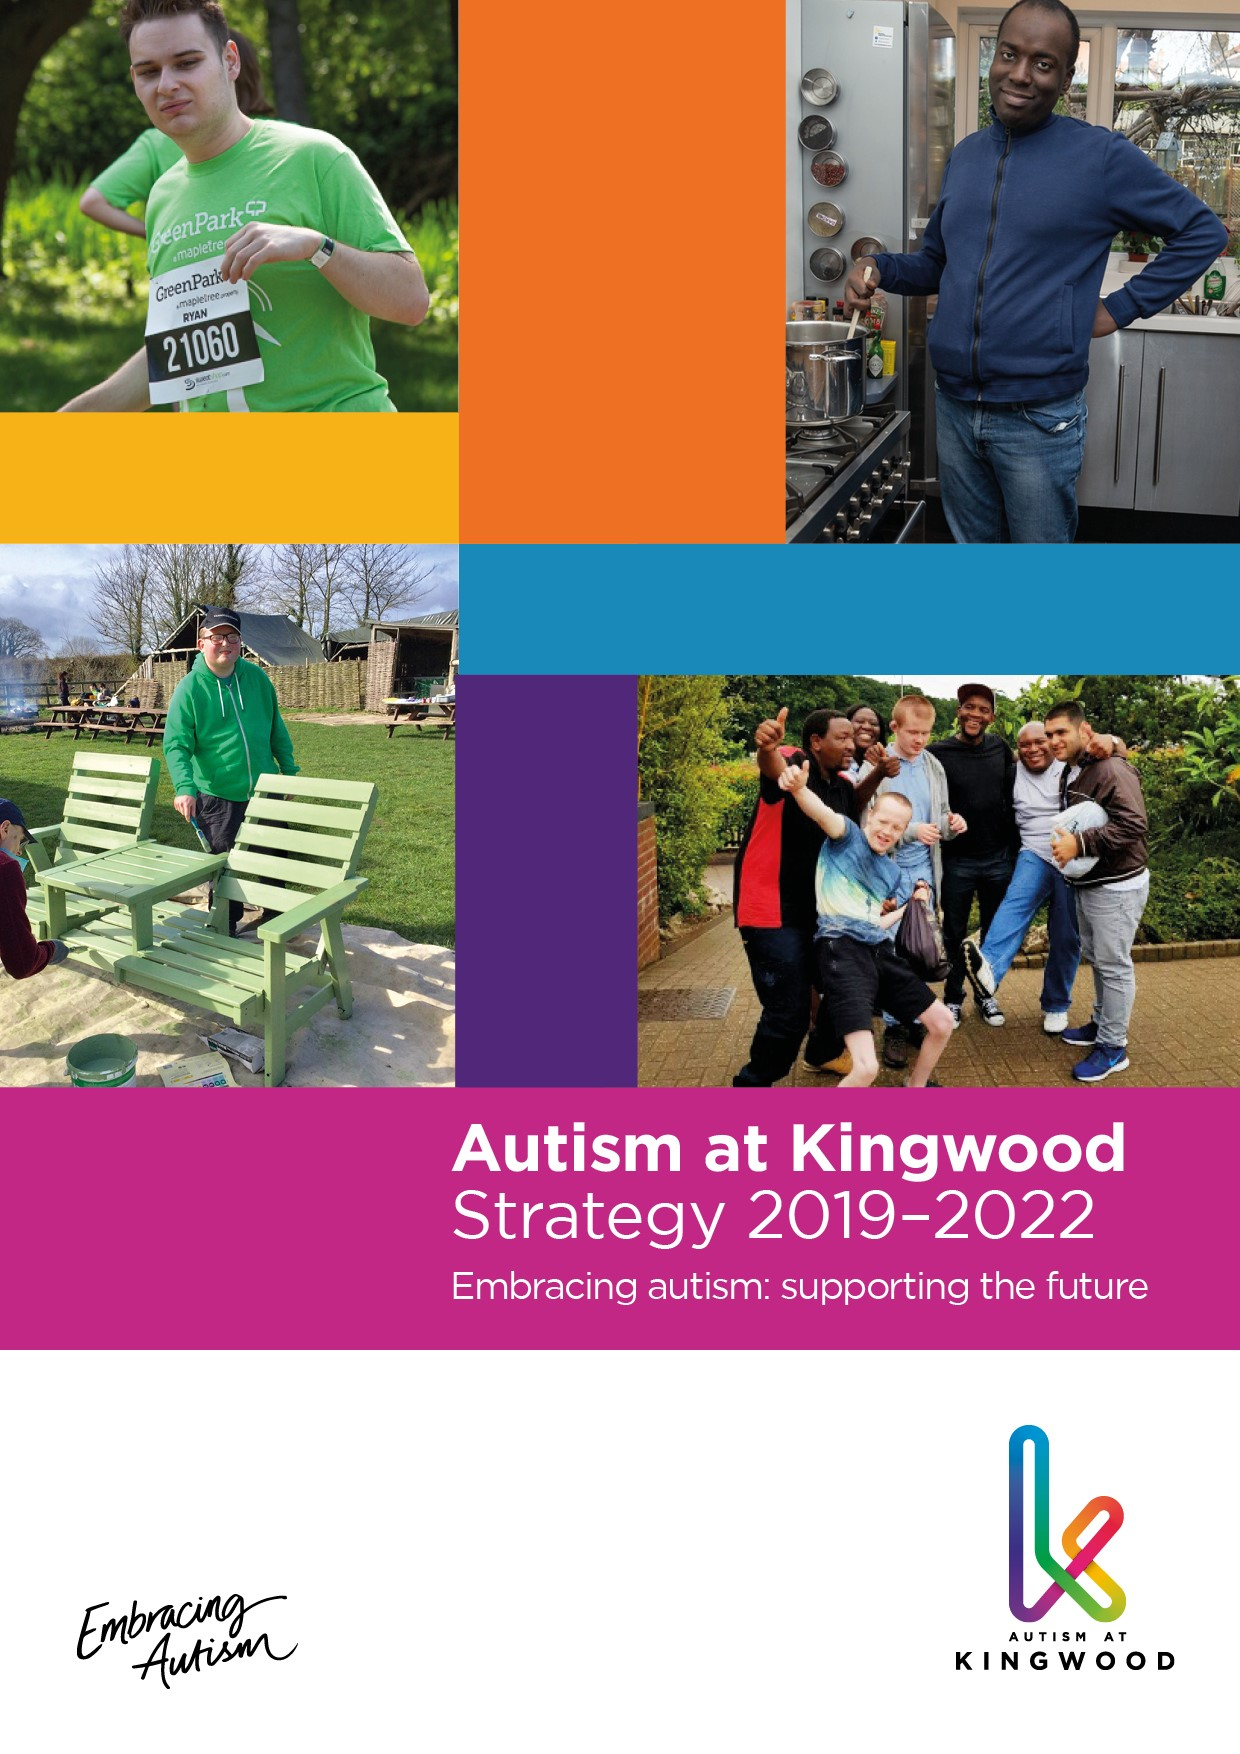 Autism at Kingwood 2019-2022 Strategy